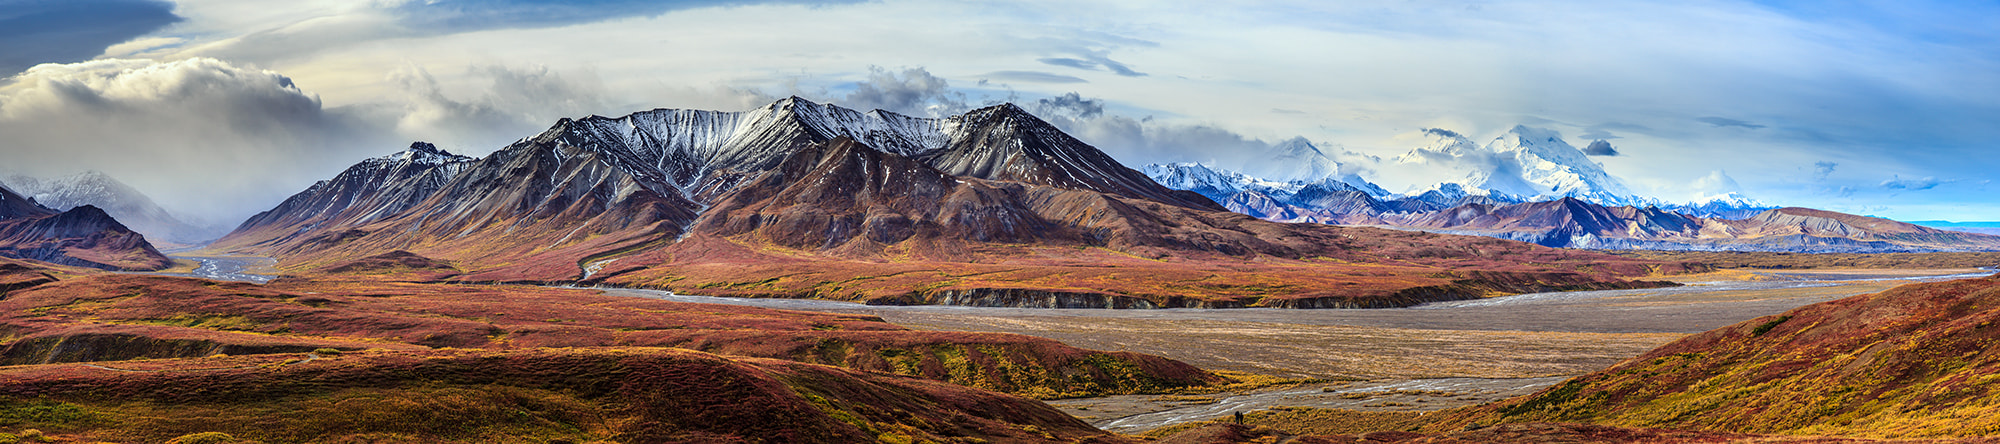 Photograph Eielson panorama by Gilles Baechler on 500px